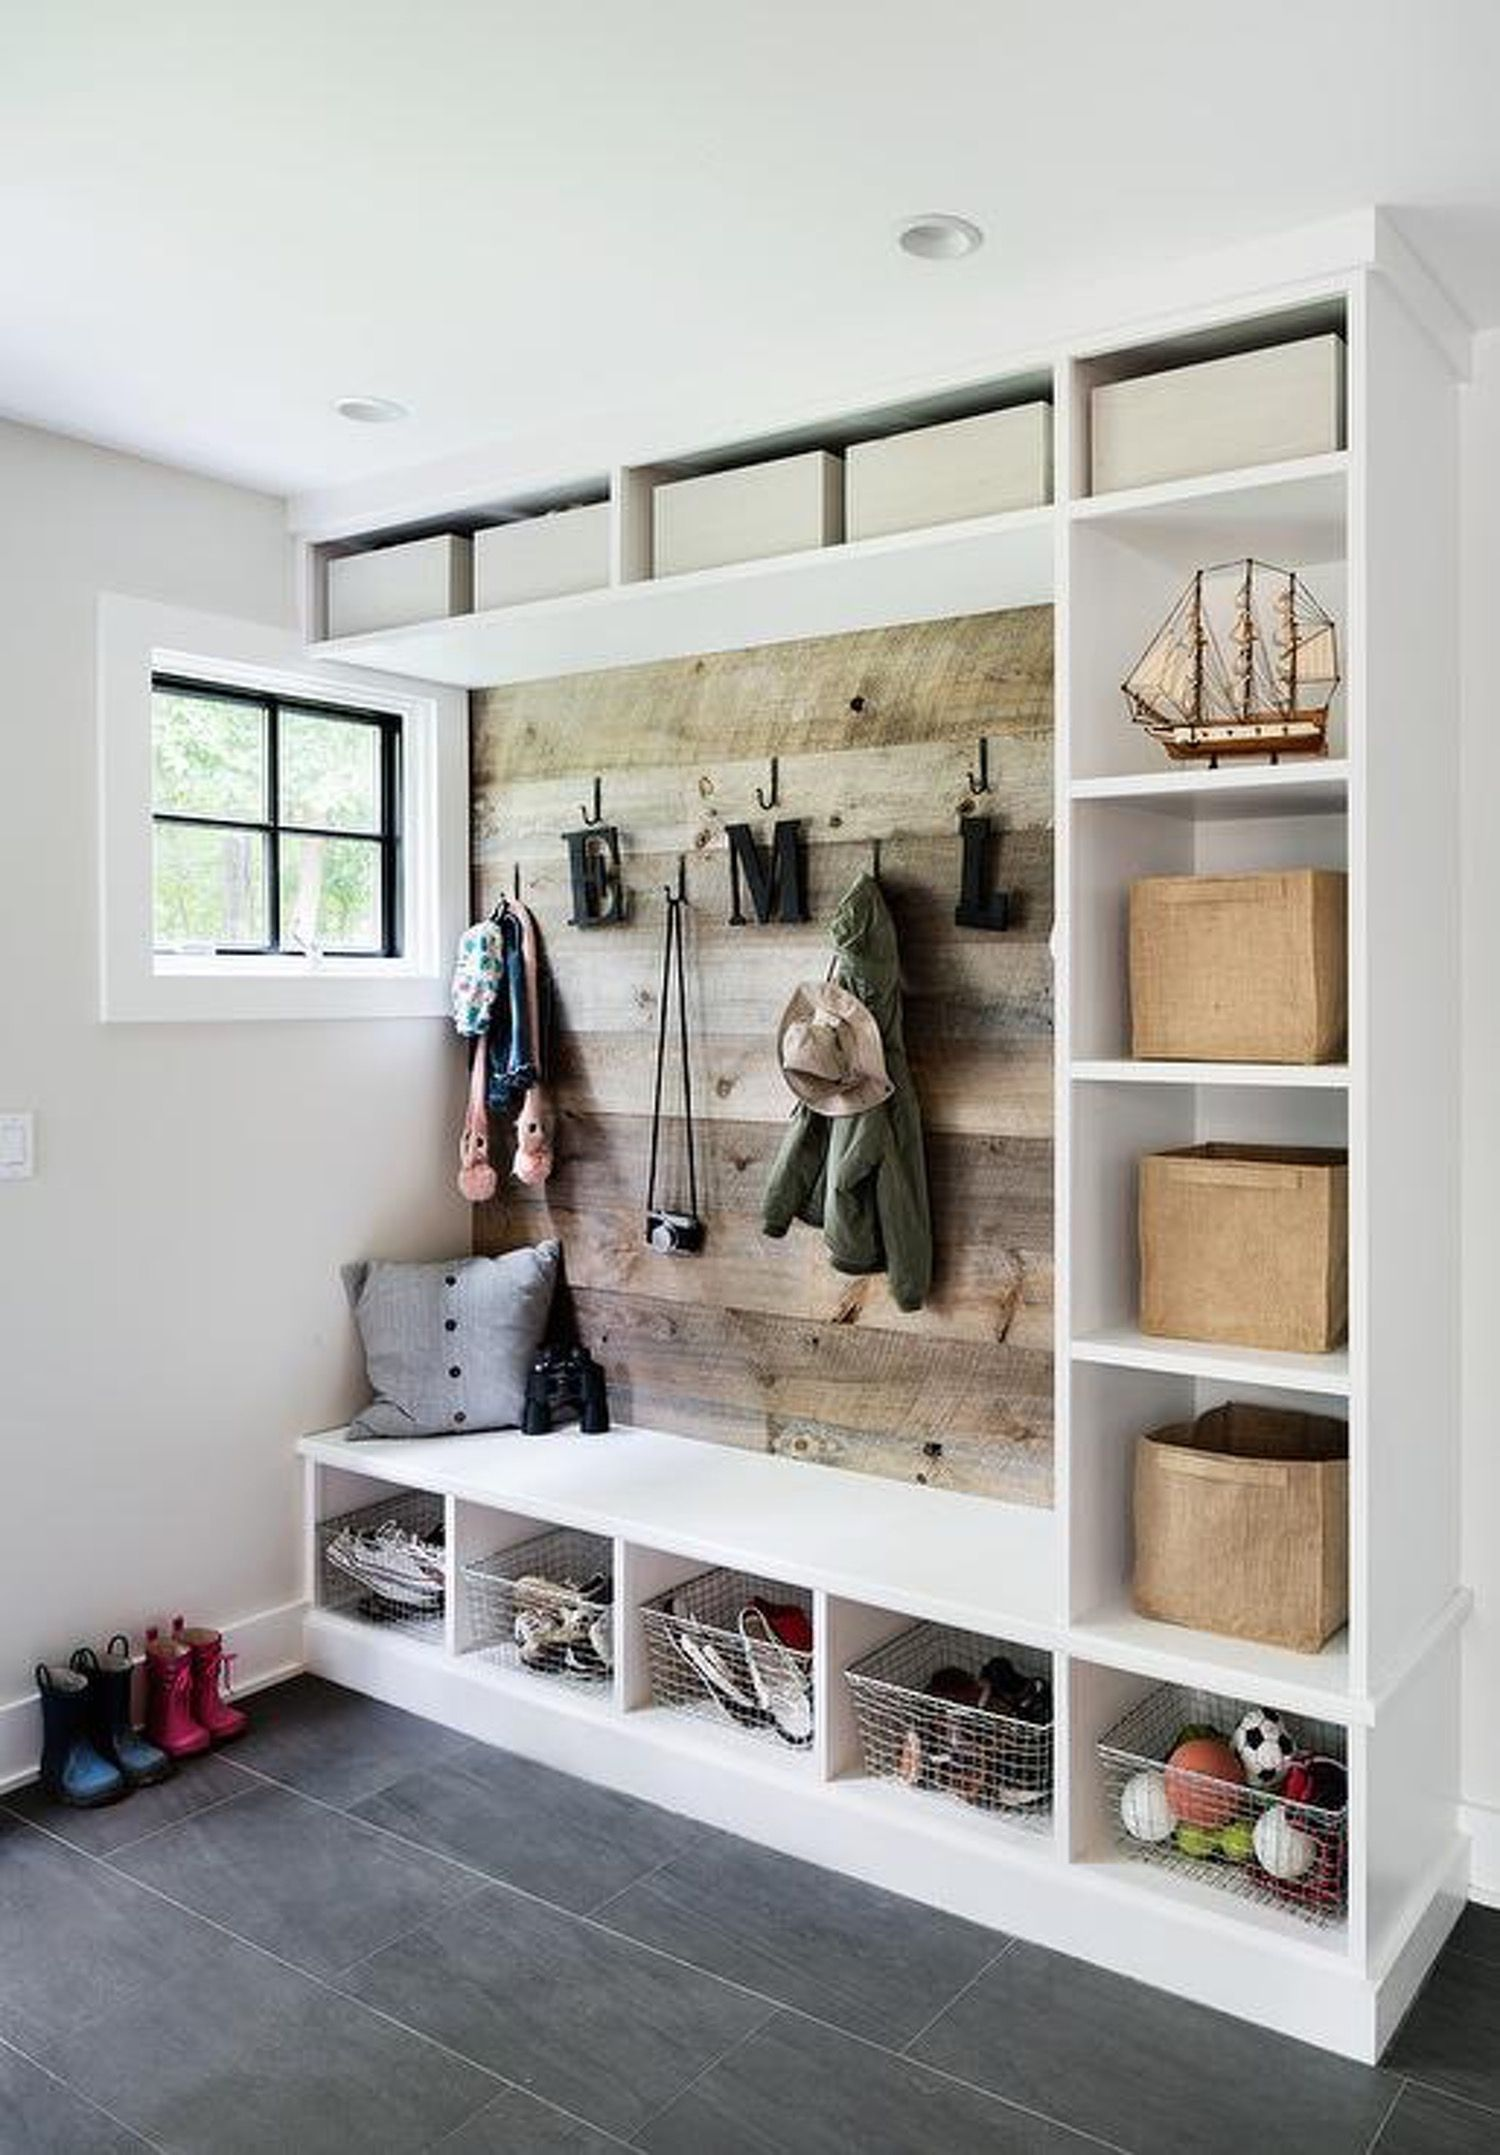 Contemporary hallway ideas  Mudrooms that Work Hard u Welcome You Home in Style  Work hard